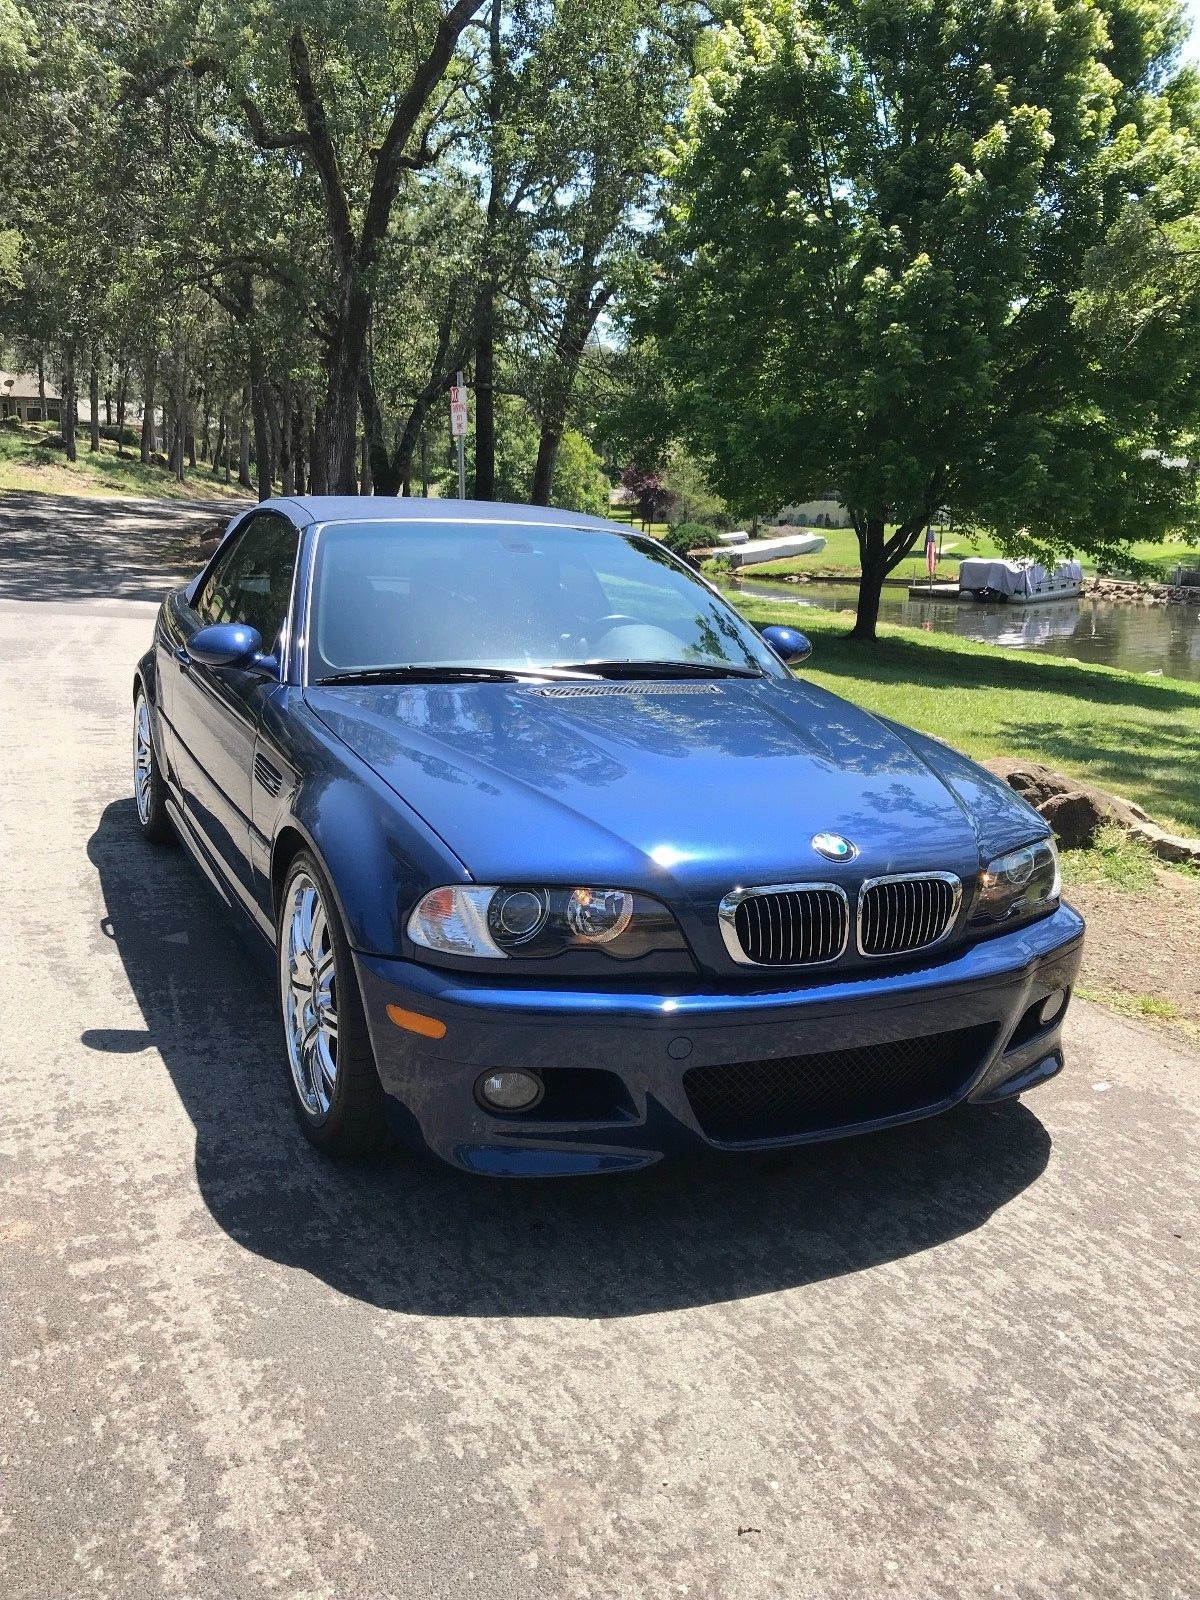 Great 2004 Bmw M3 Deluxe 2004 Bmw M3 E46 Convertible Super Low Miles 2018 2019